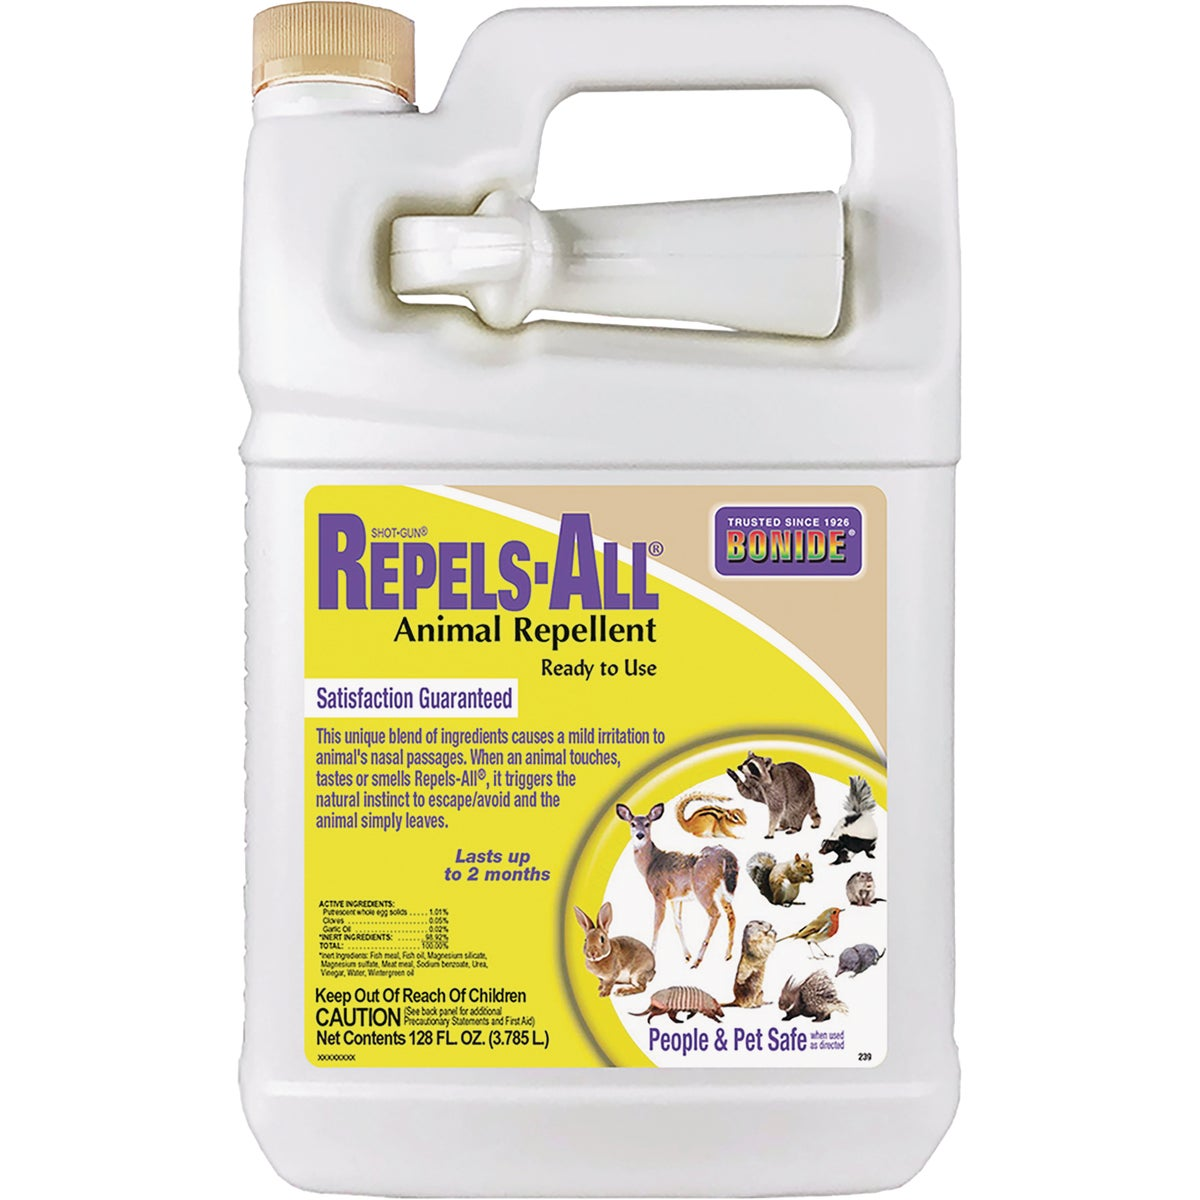 GAL RTU ANIMAL REPELLENT - 239 by Bonide